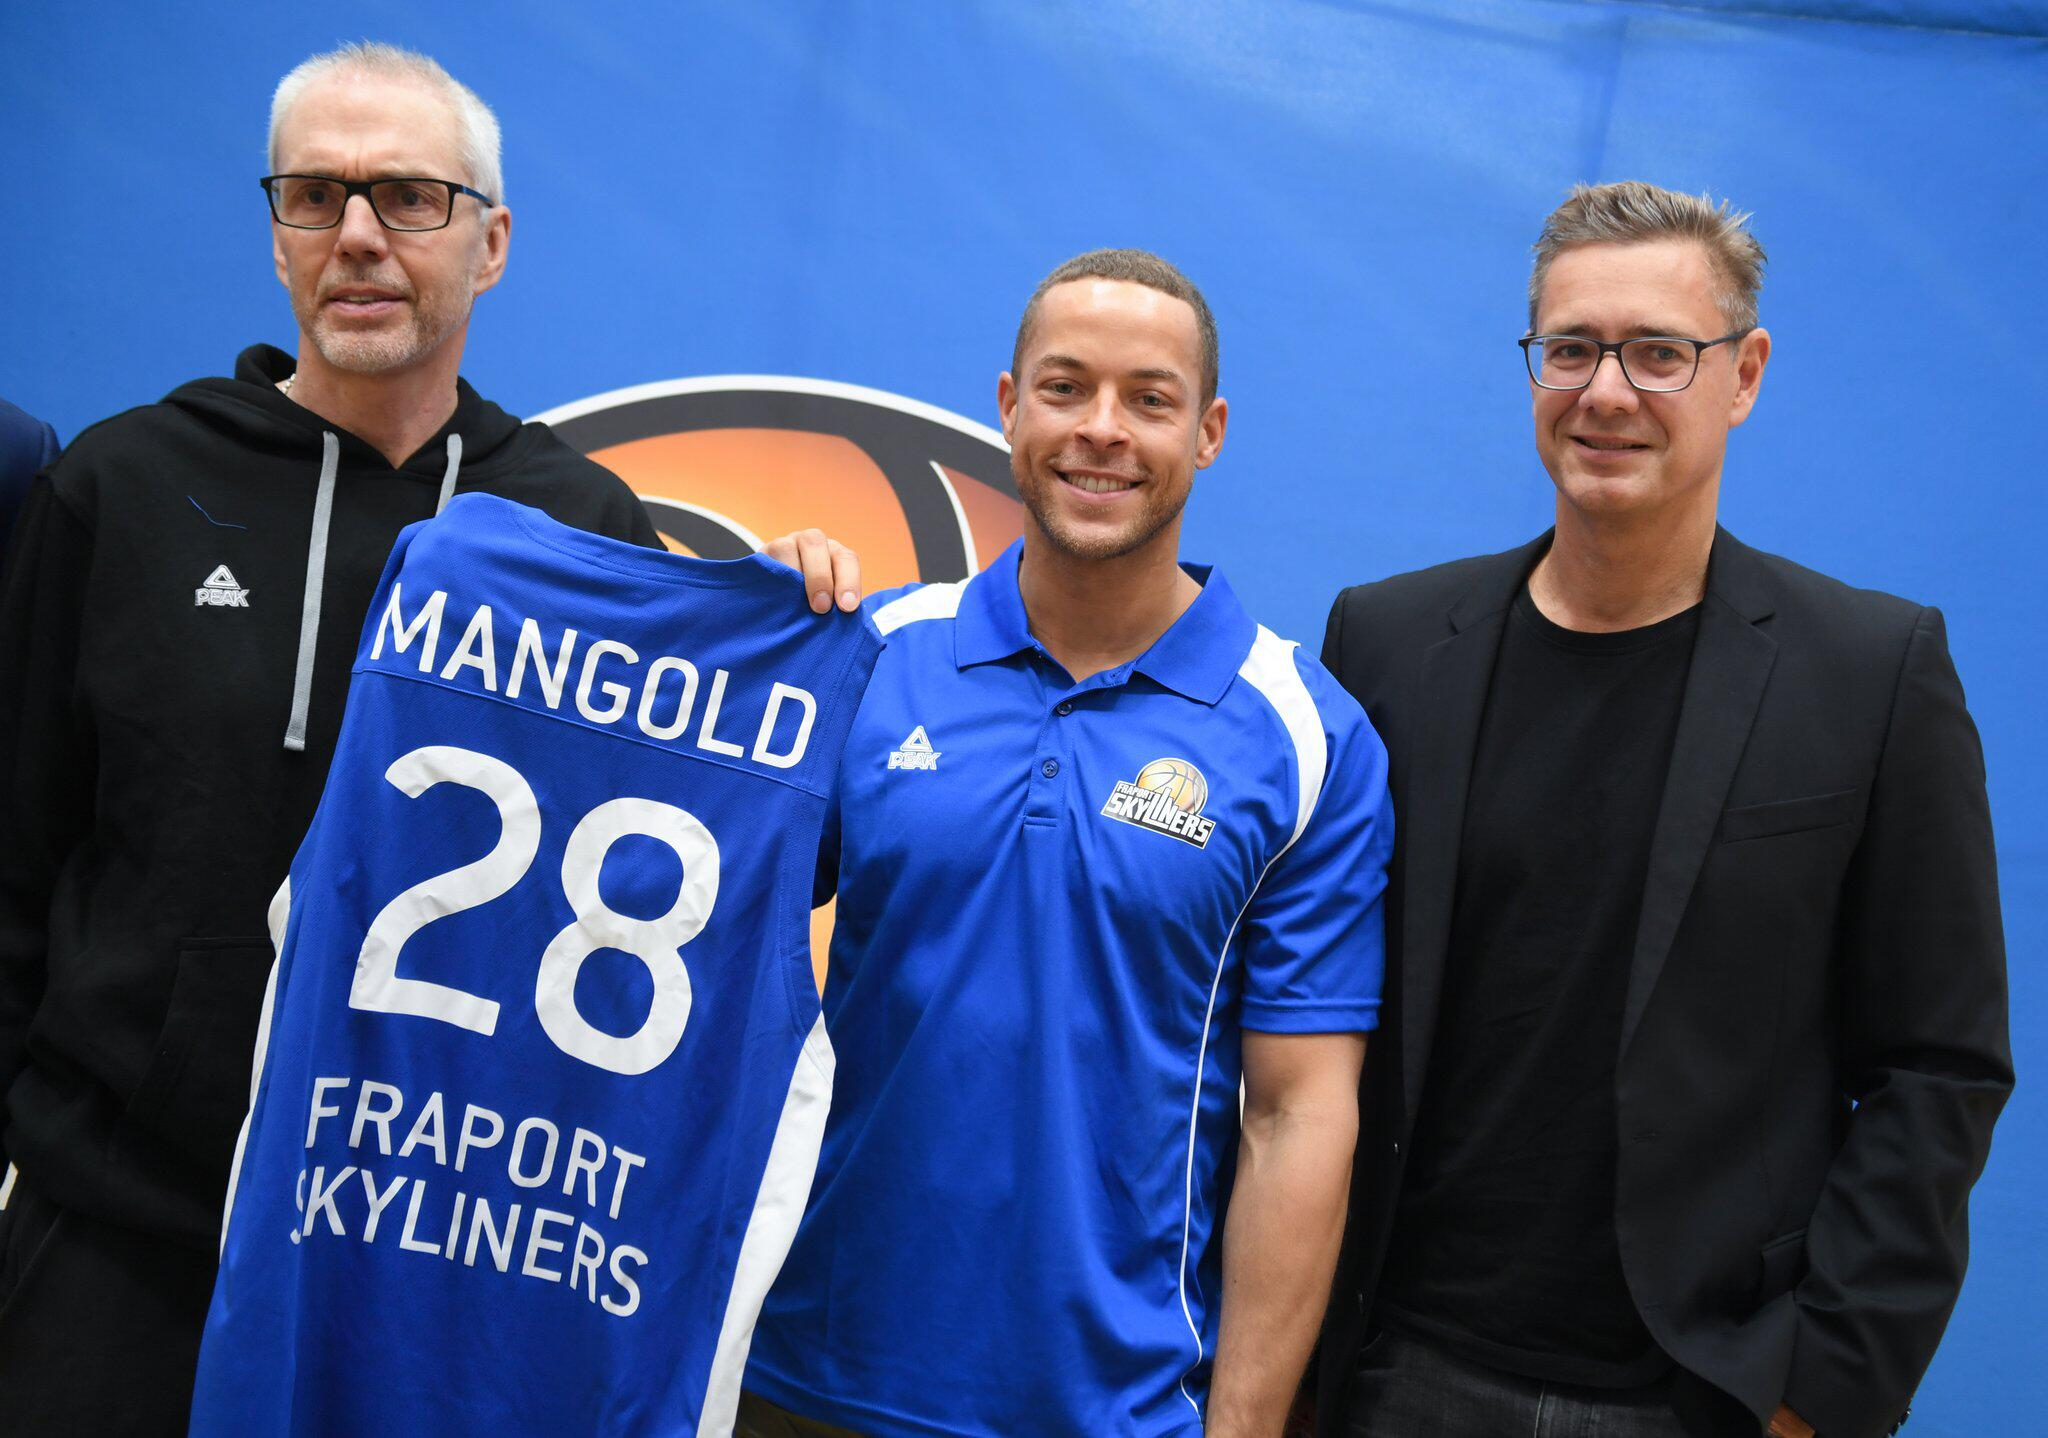 Bild zu Fraport Skyliners engage Andrej Mangold